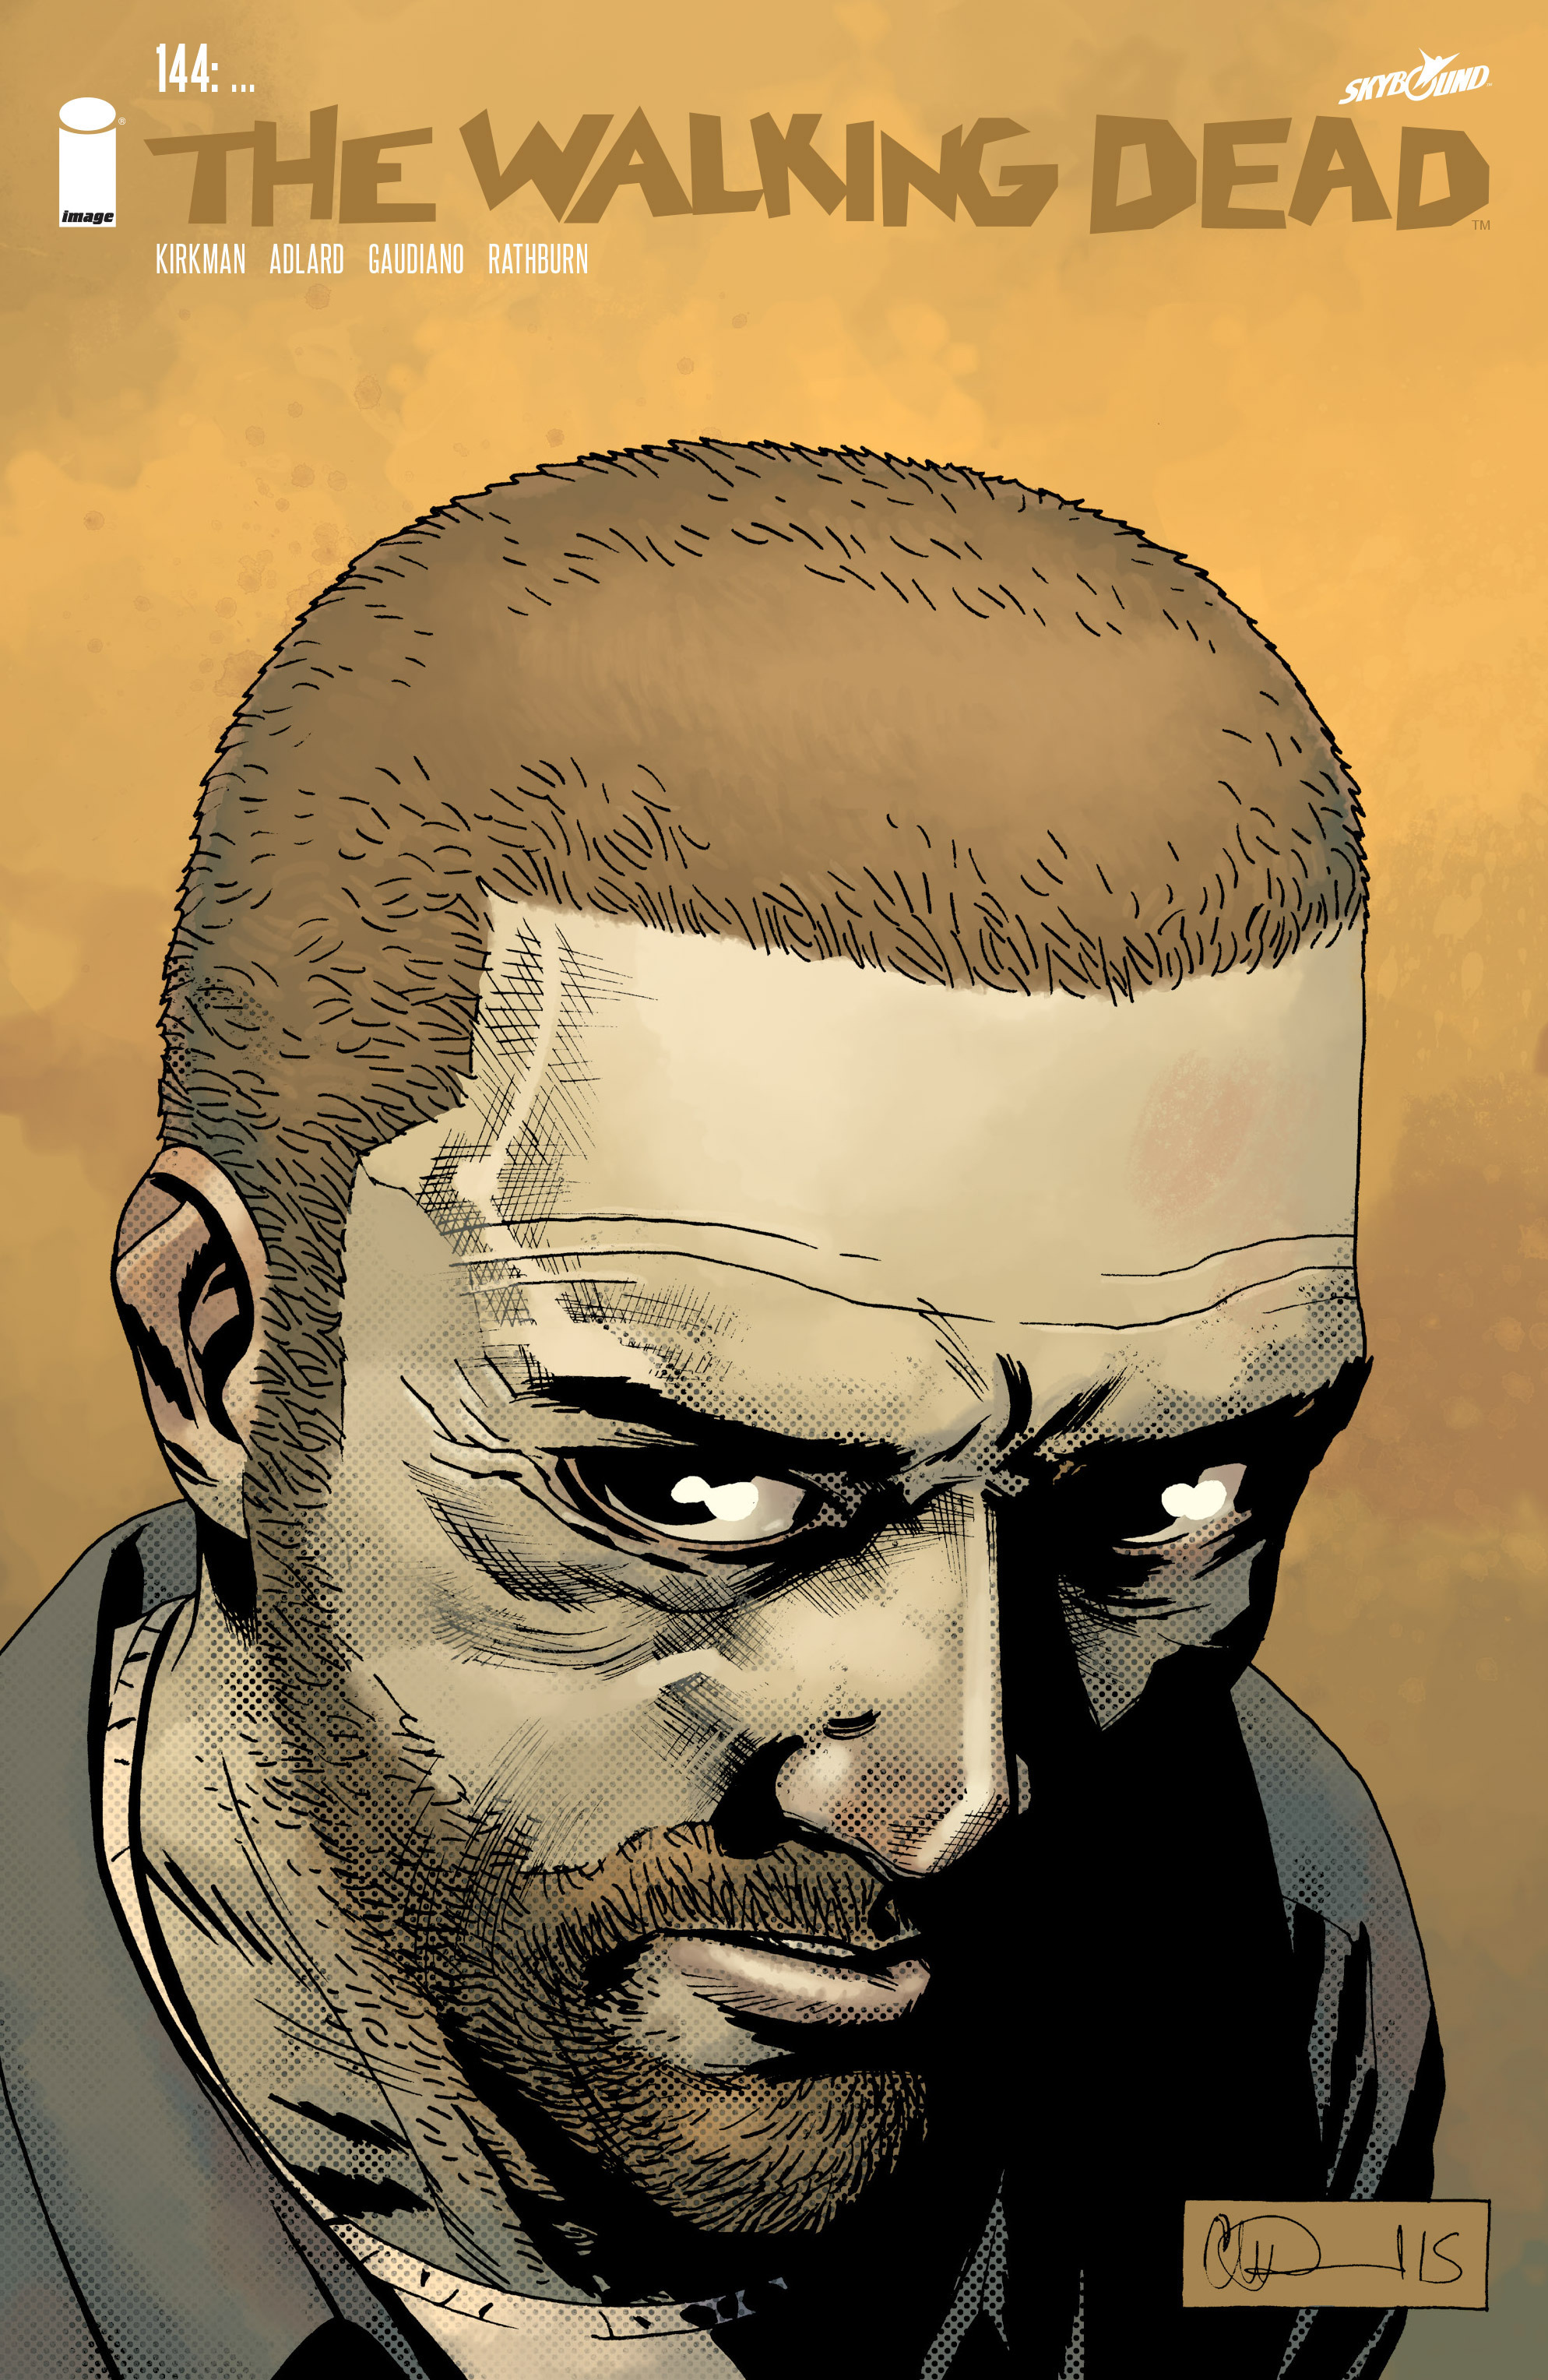 The Walking Dead 144 Page 1